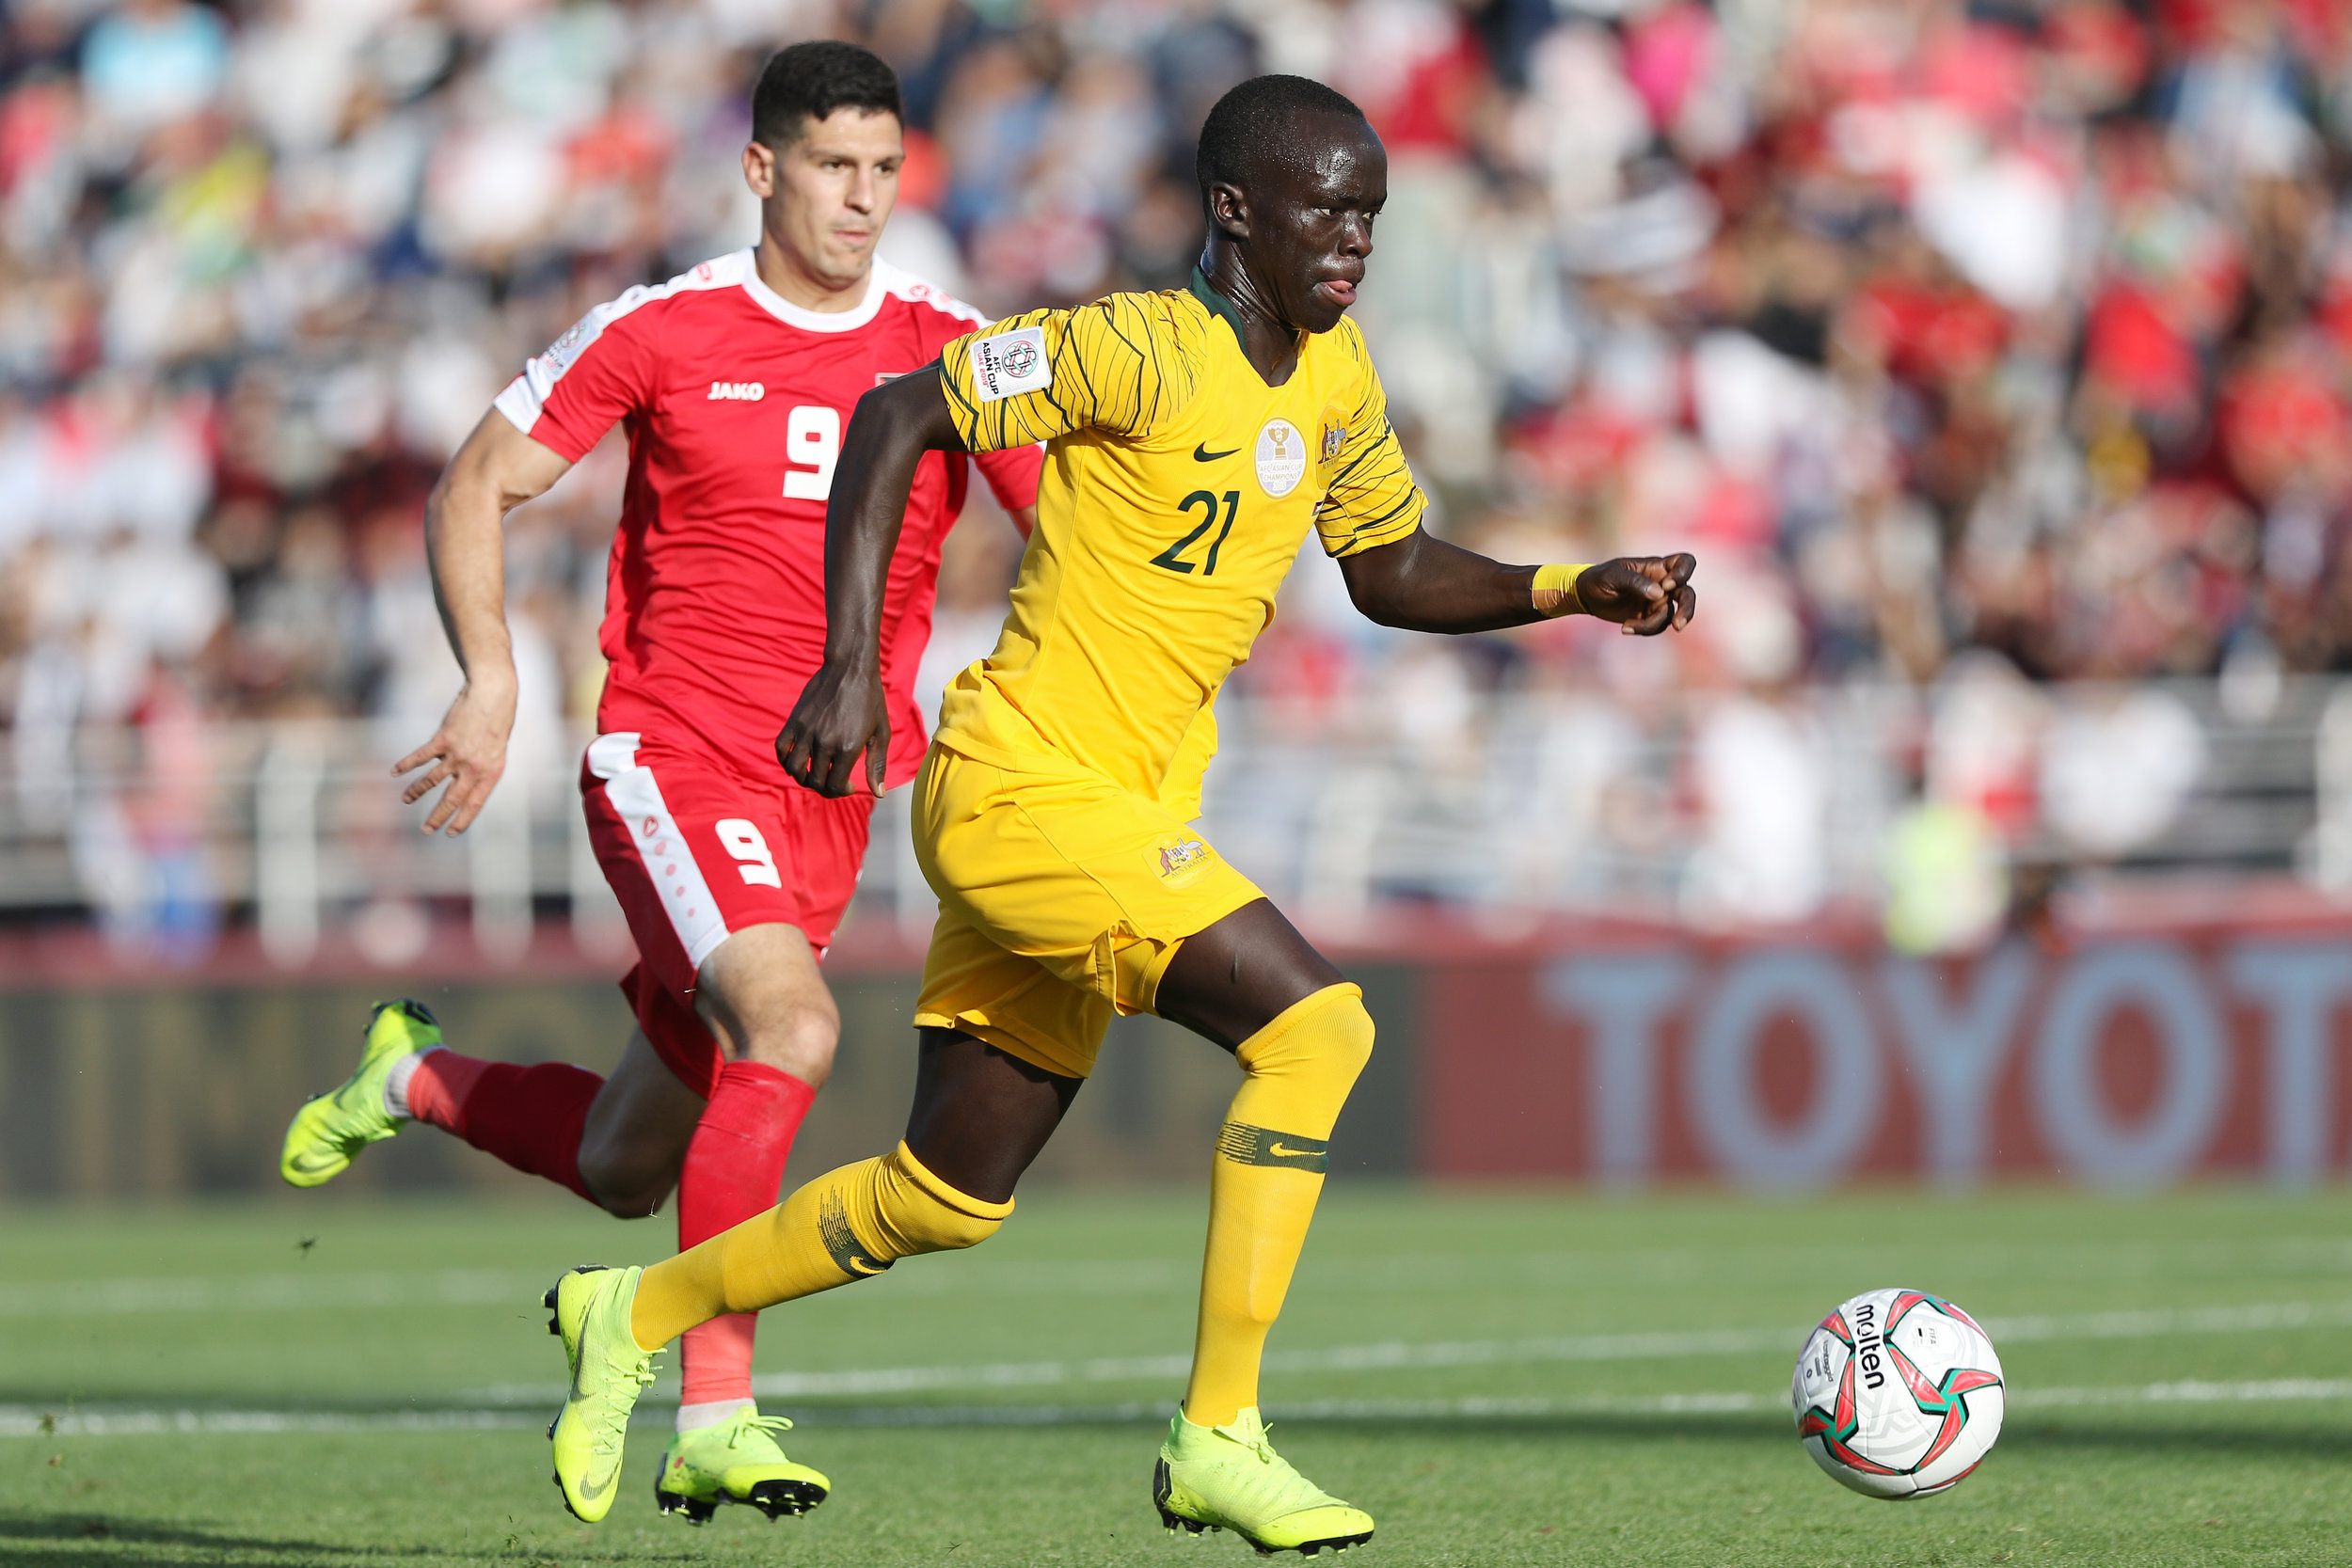 Awer Mabil, the first chance to see good actions from the talented Australian (Asian Football Confederation (AFC))